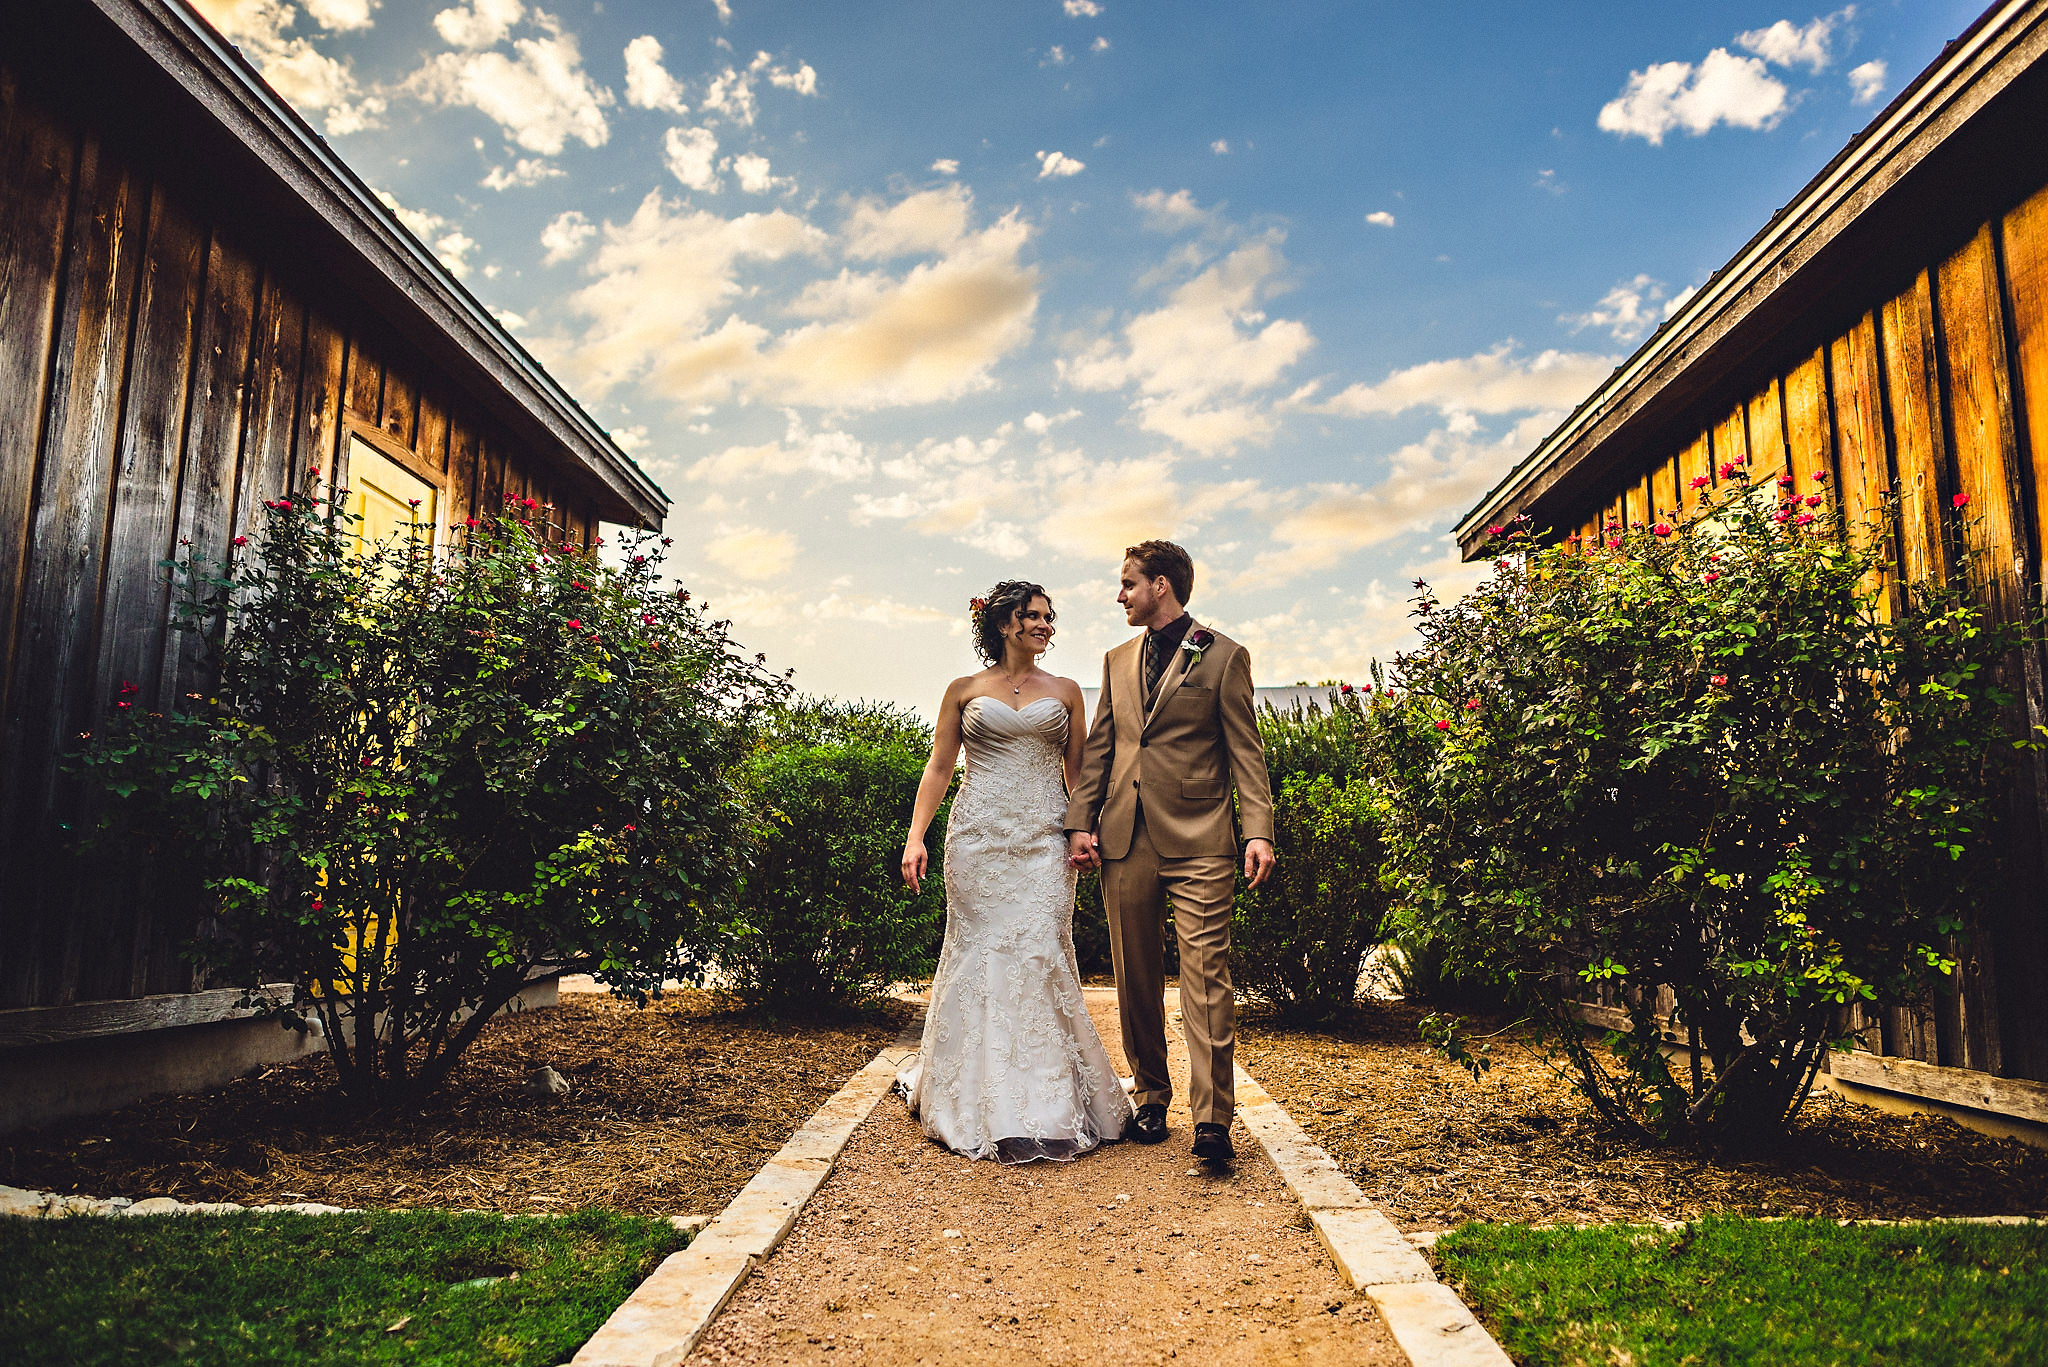 Eirik Halvorsen rustic wedding Fredericksburg Austin Texas wedding photographer-54.jpg